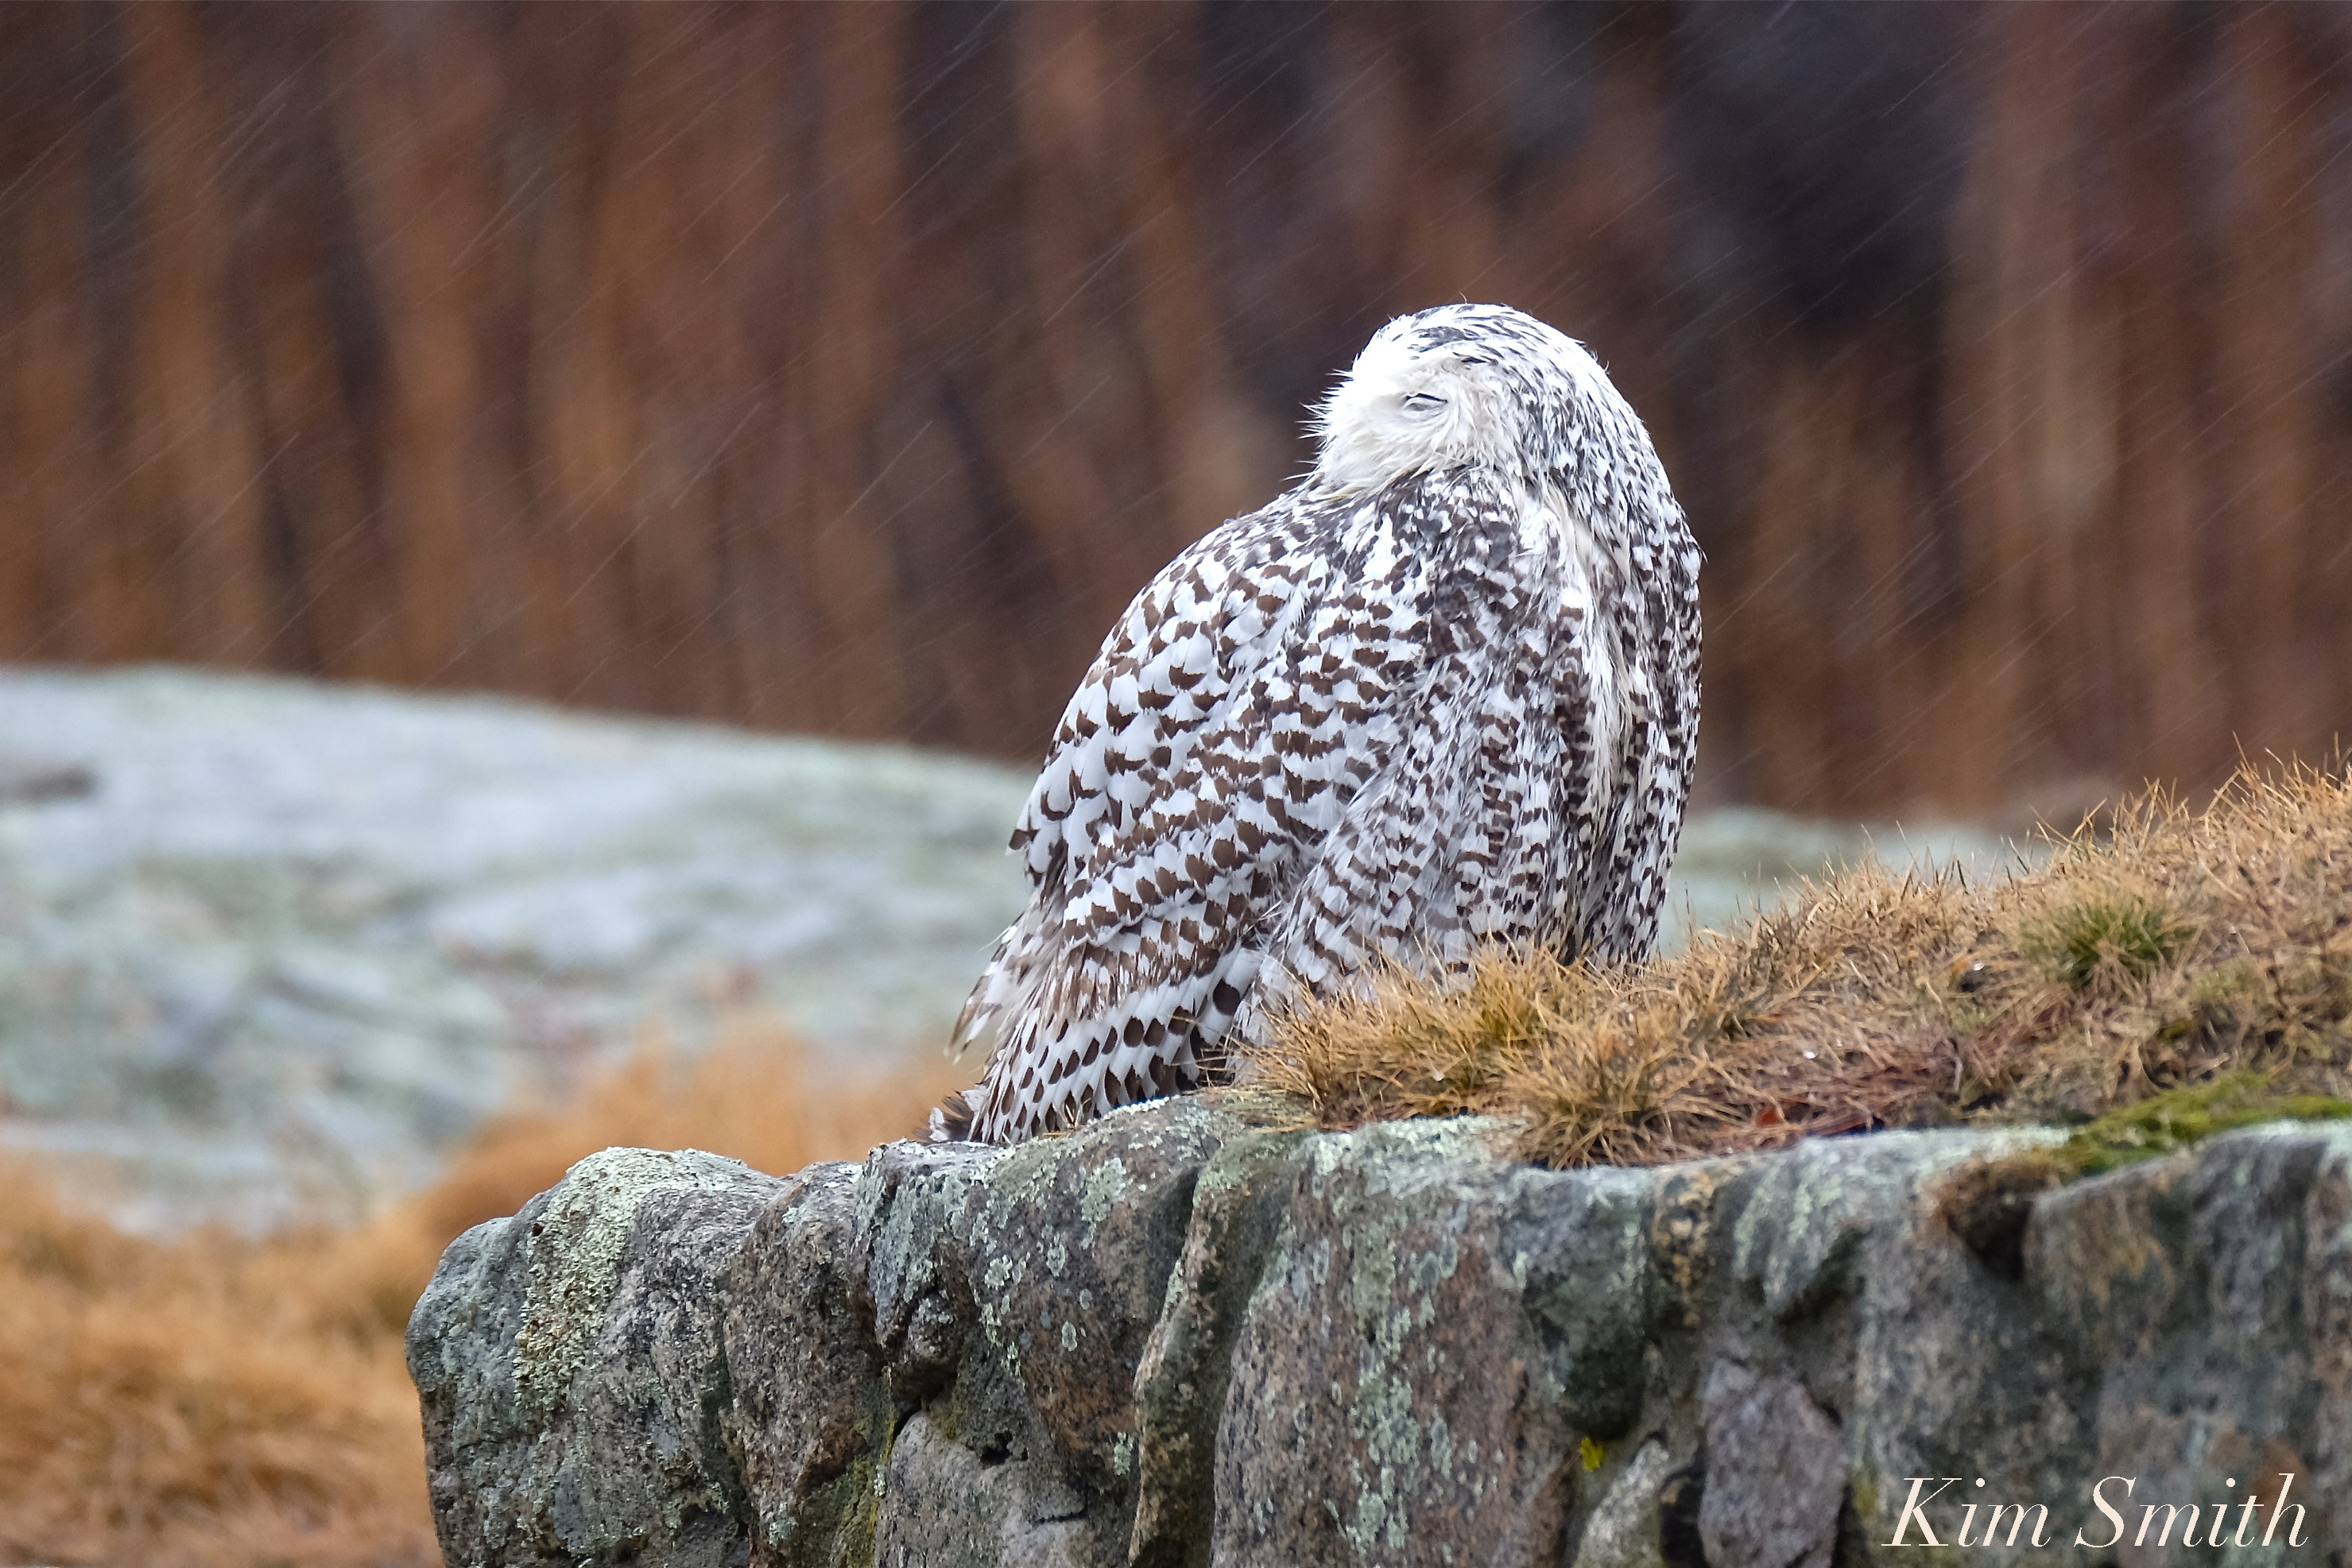 Female snowy owl kim smith designs hedwig sleeping in the rain thank you to arly pett for letting me know she was out in the rain biocorpaavc Choice Image